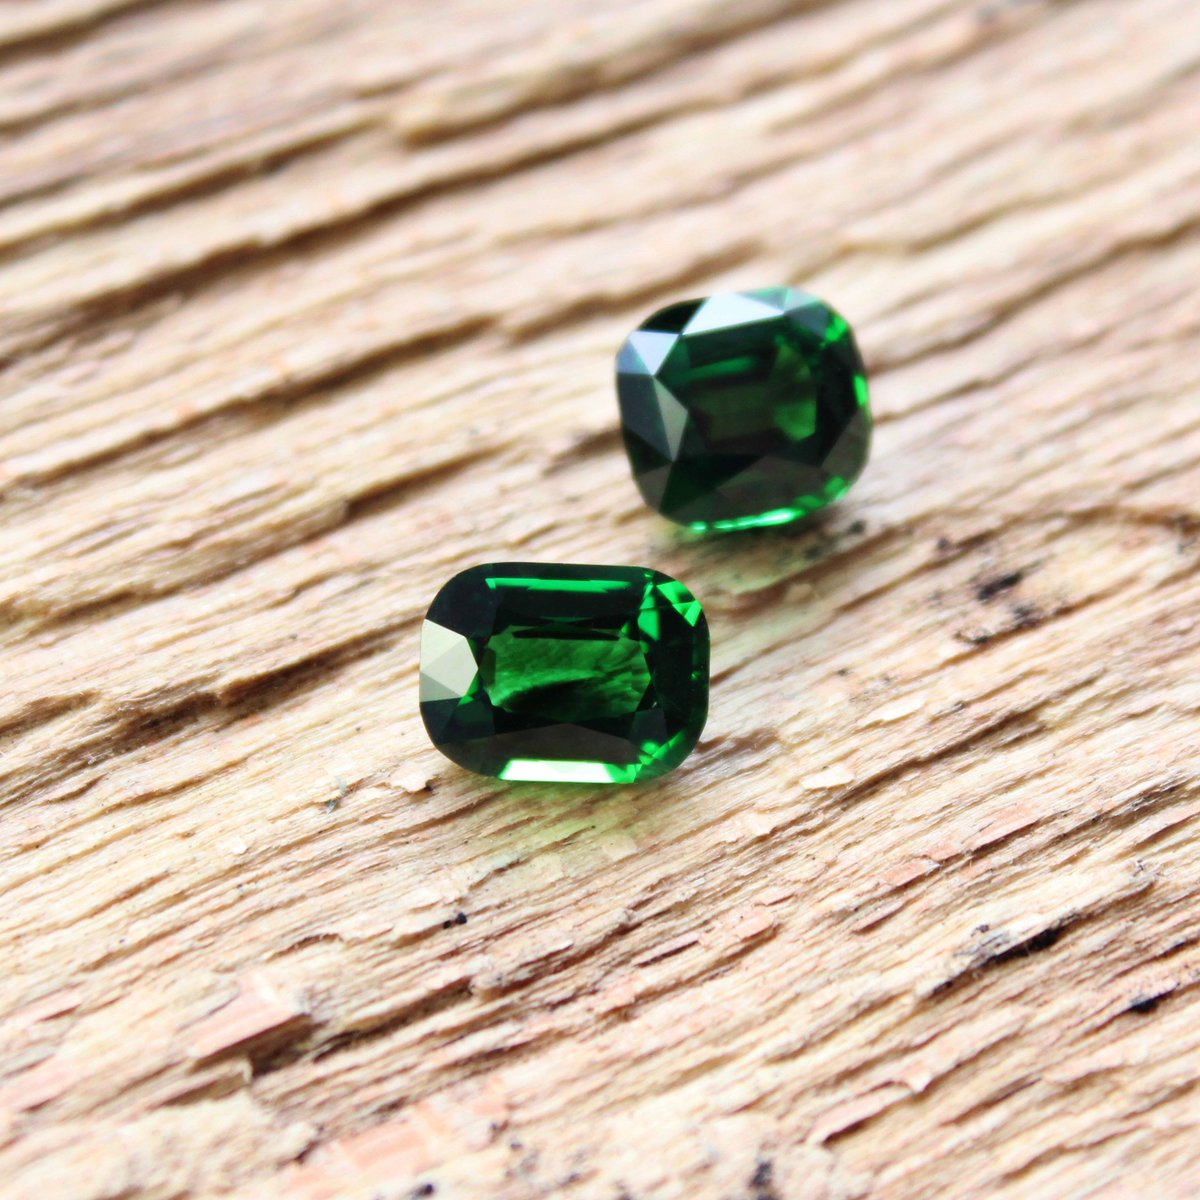 gem tsavorite kenyan gemstones adventurer gemstone